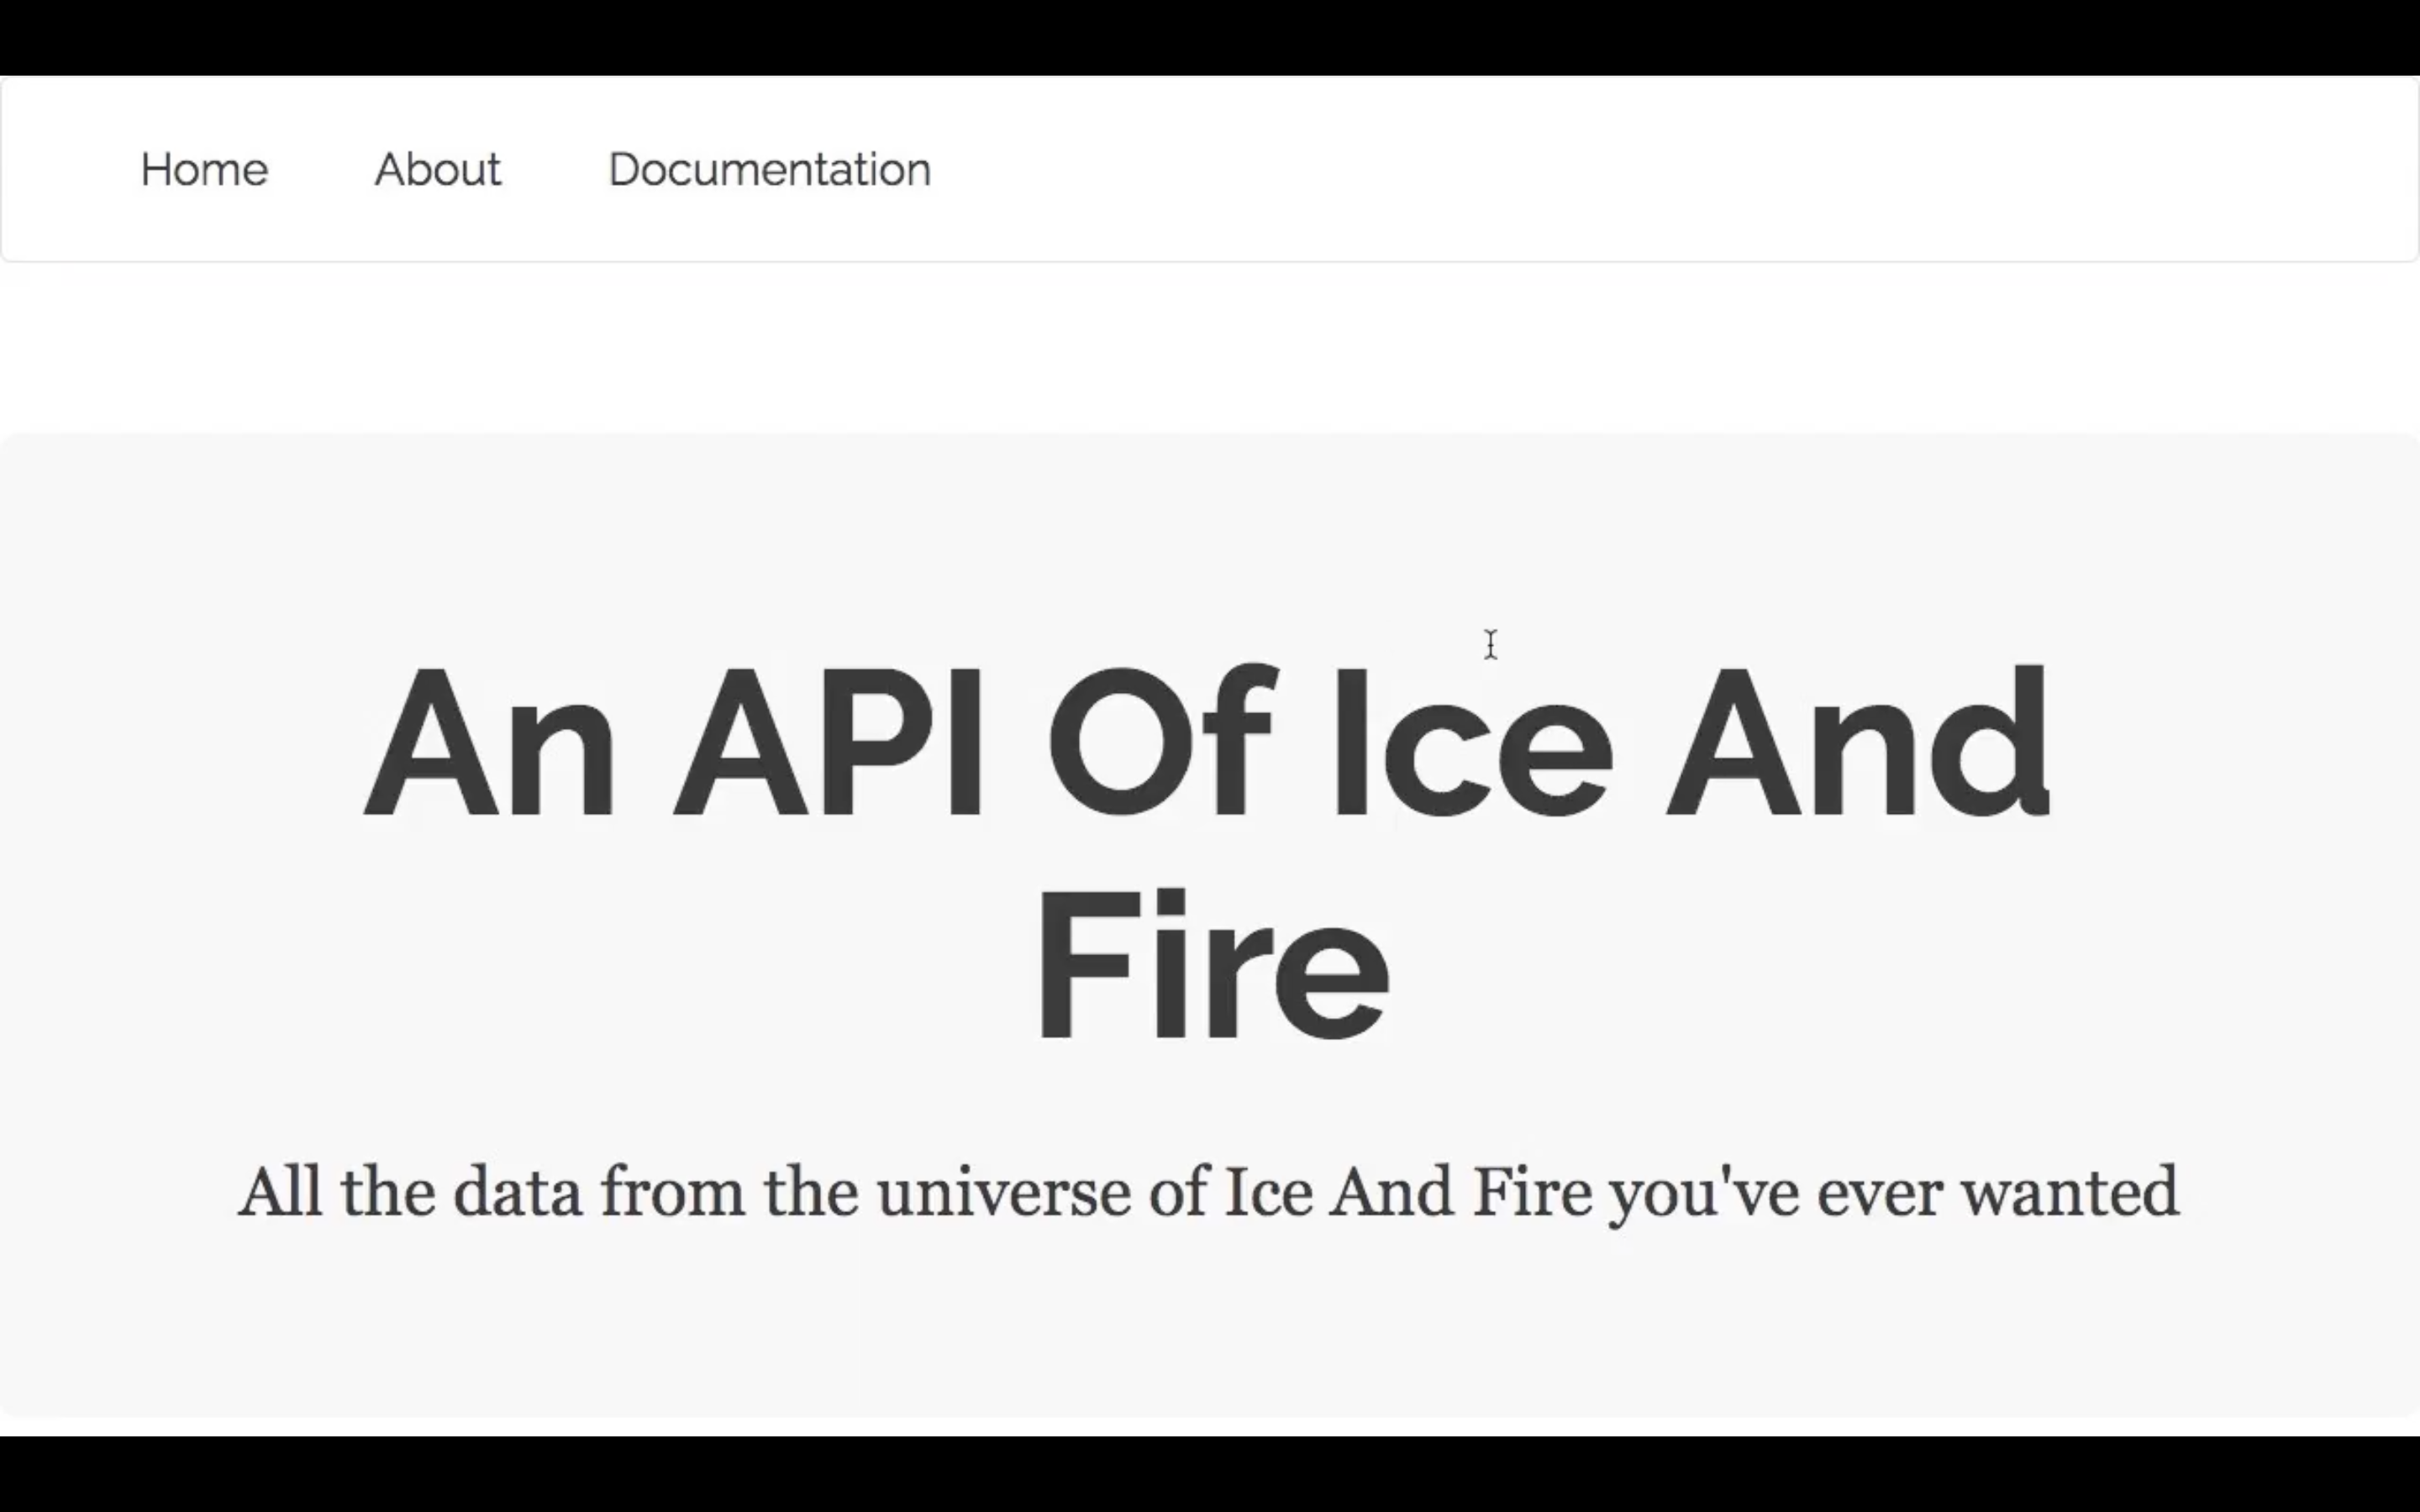 An API of Ice and Fire homepage